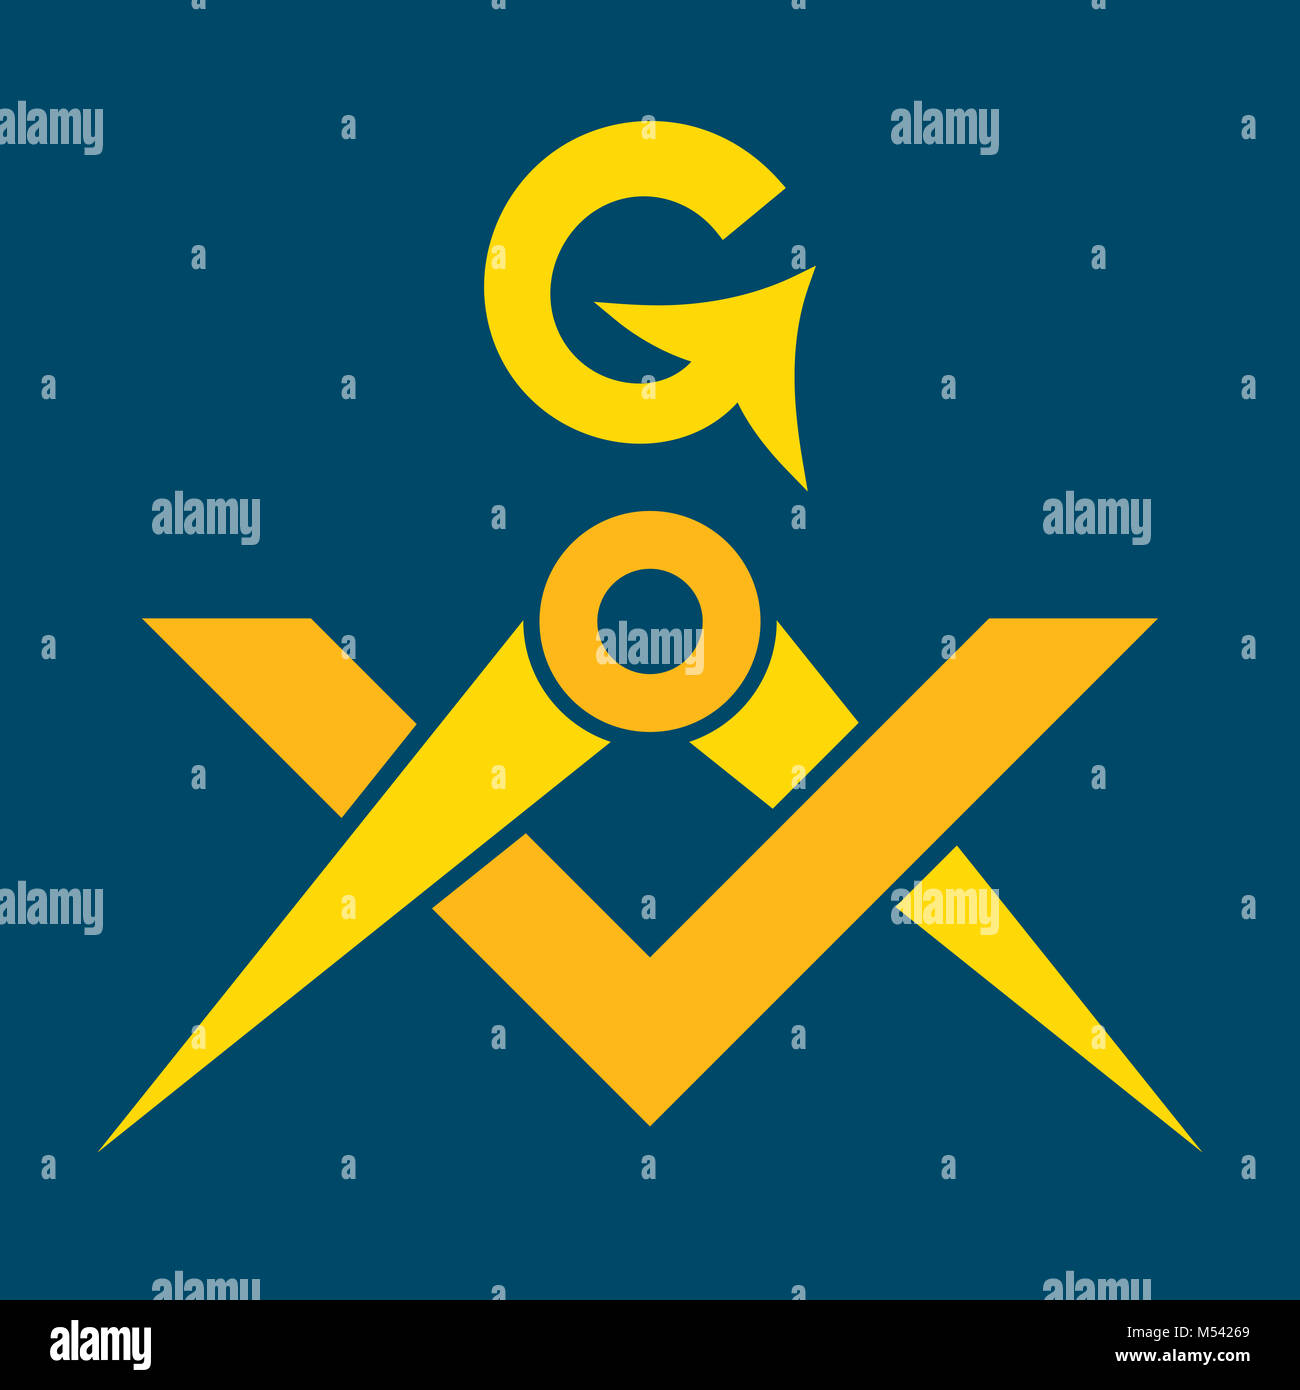 Masonic Square and Compasses (Sacral Emblem of Secret fraternity) Stock Photo